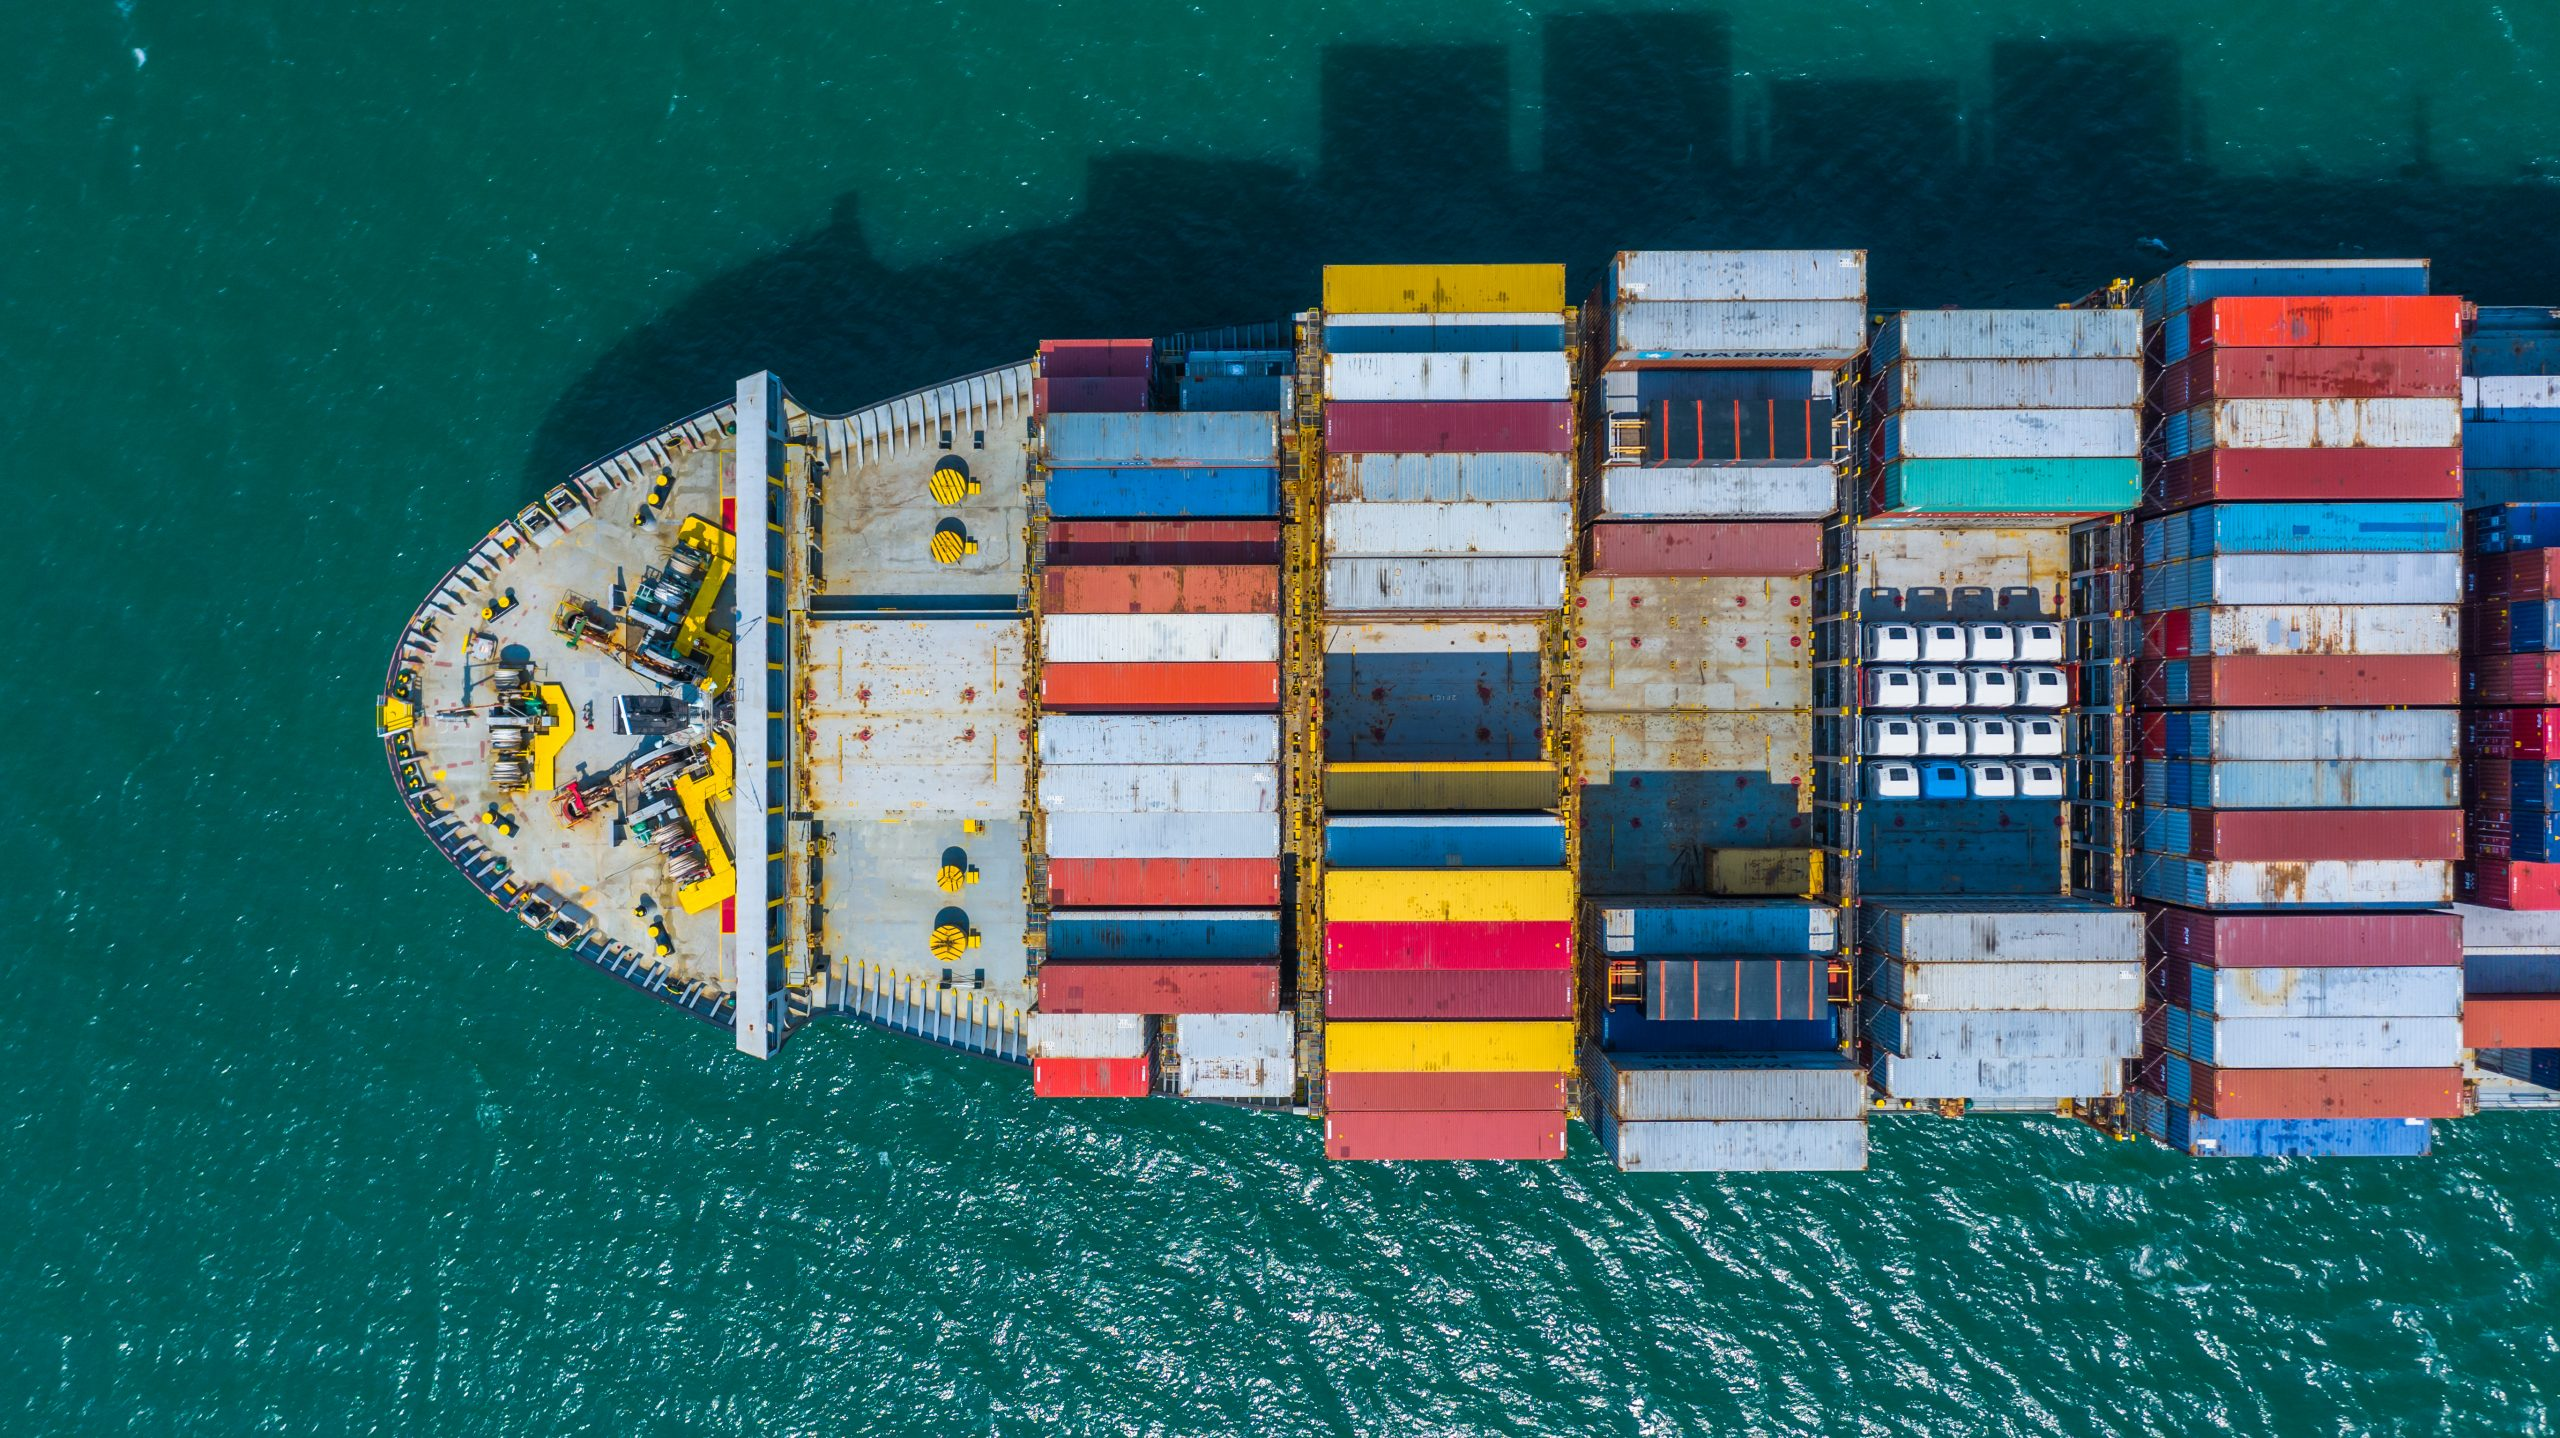 5 Things To Consider When Starting a Freight Forwarding Business